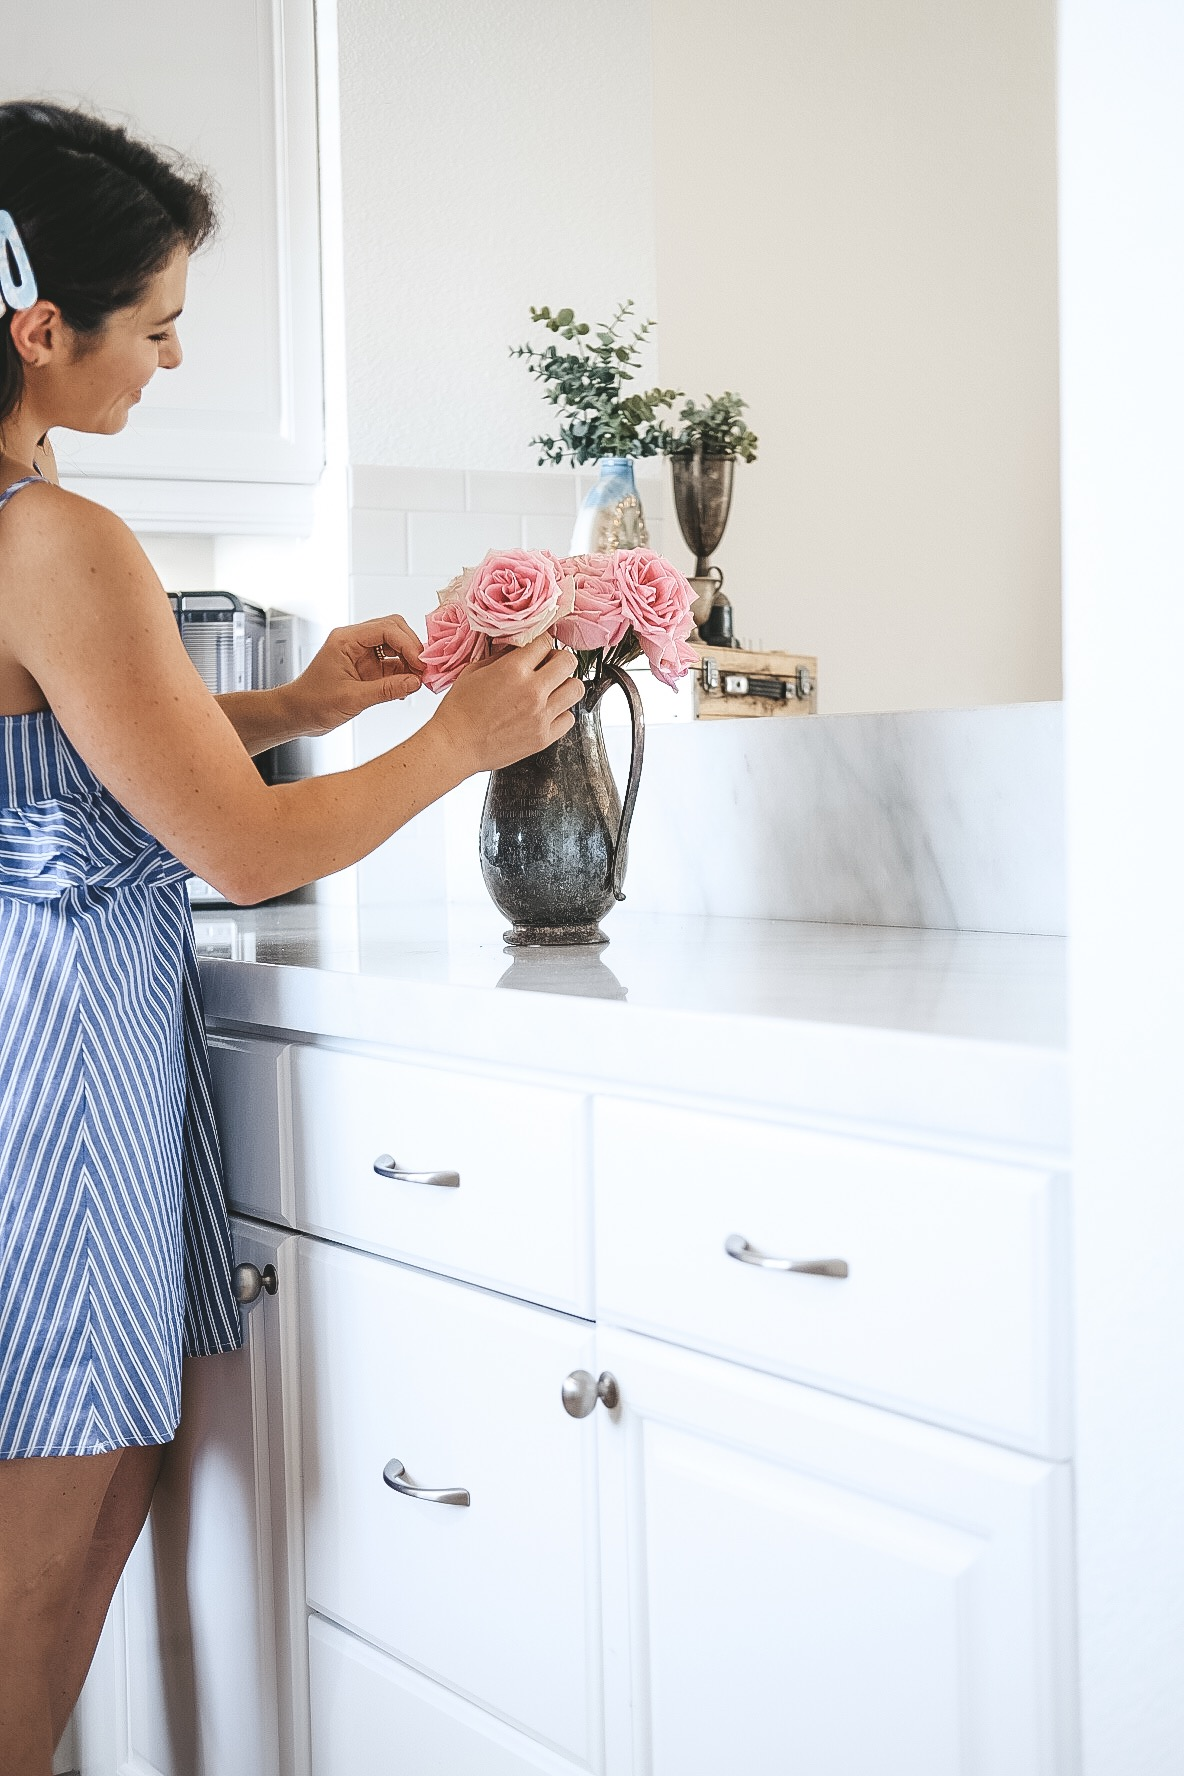 Pros and cons of marble countertops in kitchens and bathrooms.  White kitchen with marble countertops and silver hardware.  Light wood flooring.  Light wood LVP floors. Carrera marble kitchen. White cabinets.